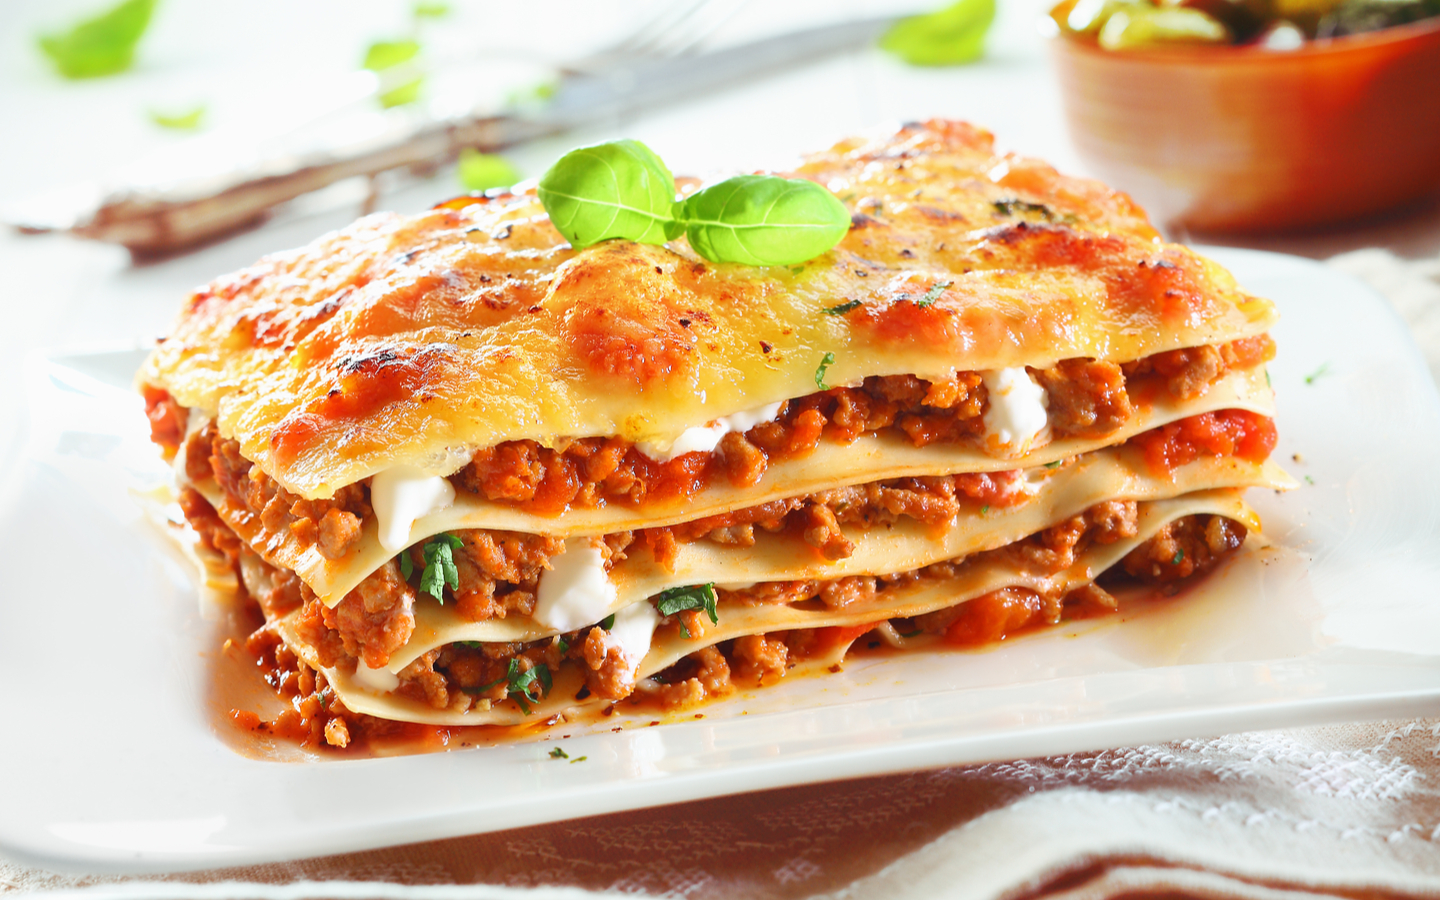 Ravioli and Co offers best lasagna in town